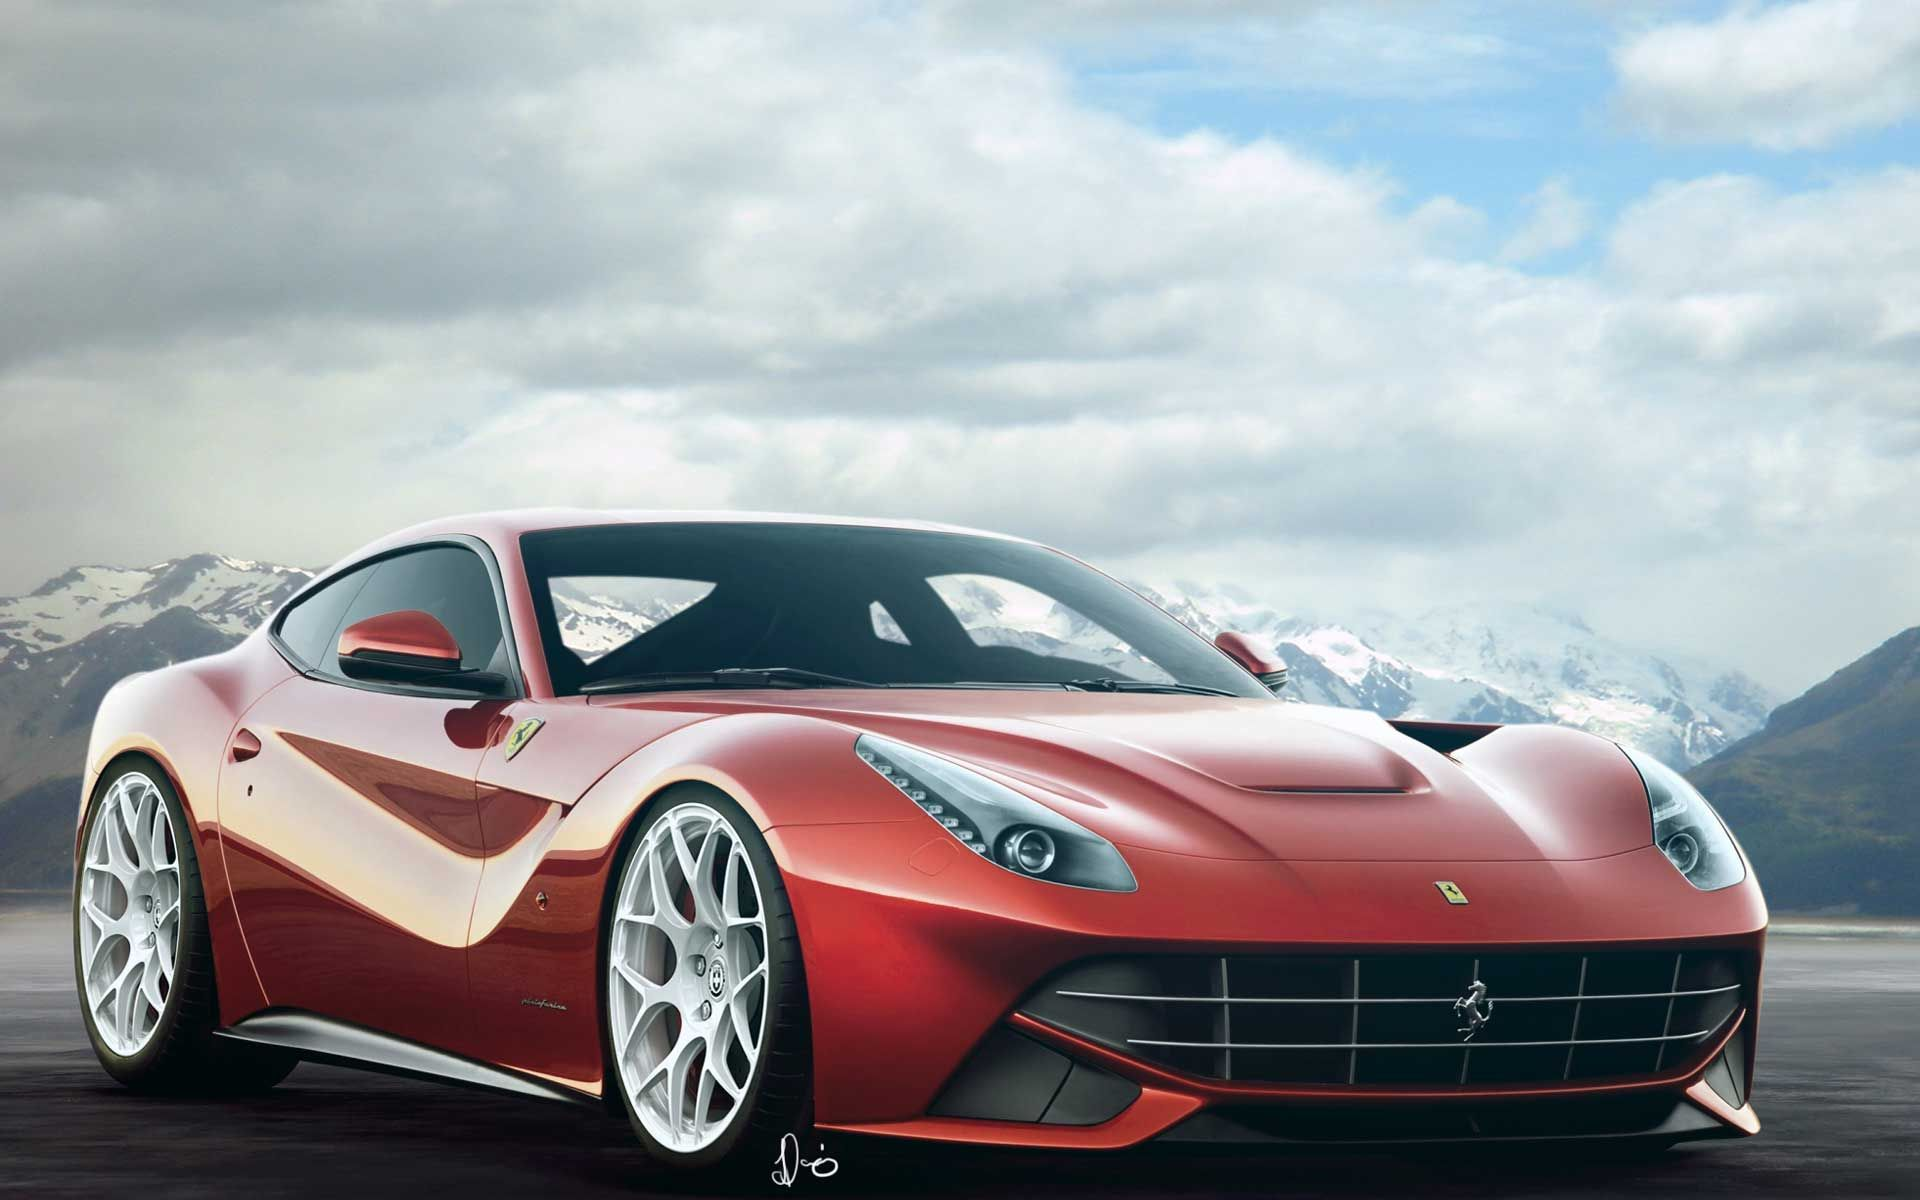 Ferrari F12 Berlinetta Free Wallpapers Ferrari F12 Berlinetta